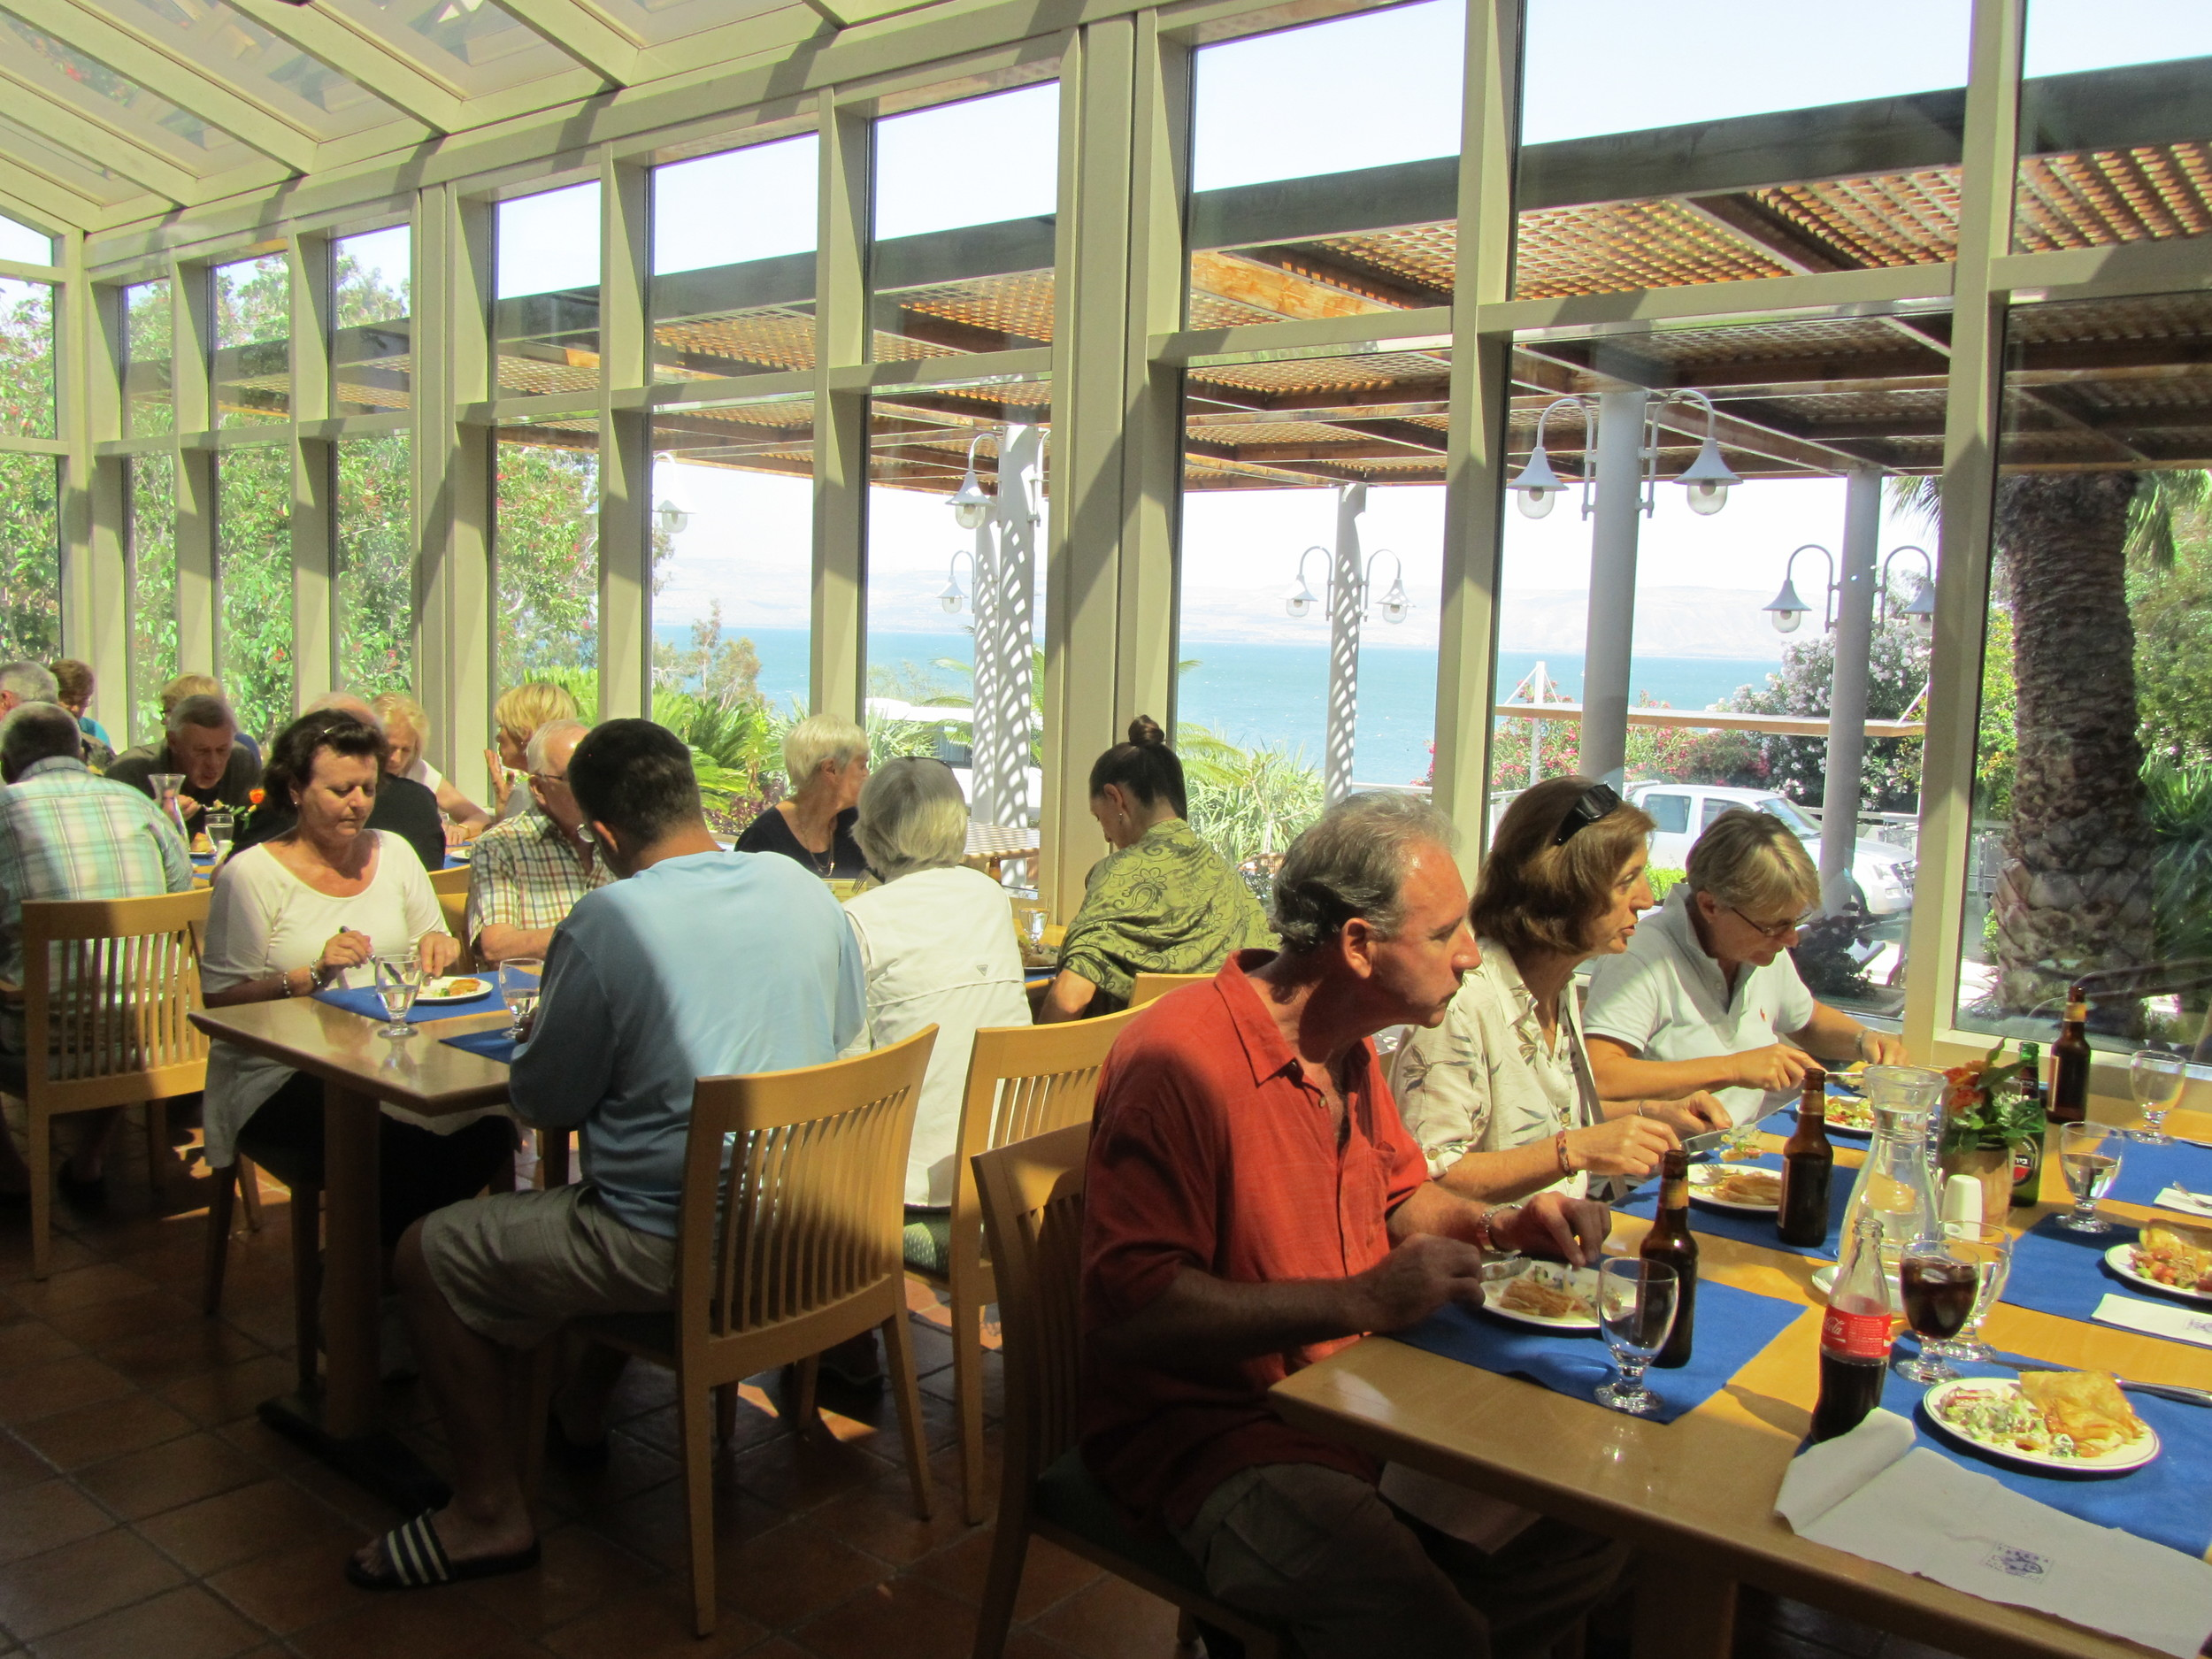 Another Great Meal Overloking the Lake in the Dining Room of Tabgha Pilgerhaus